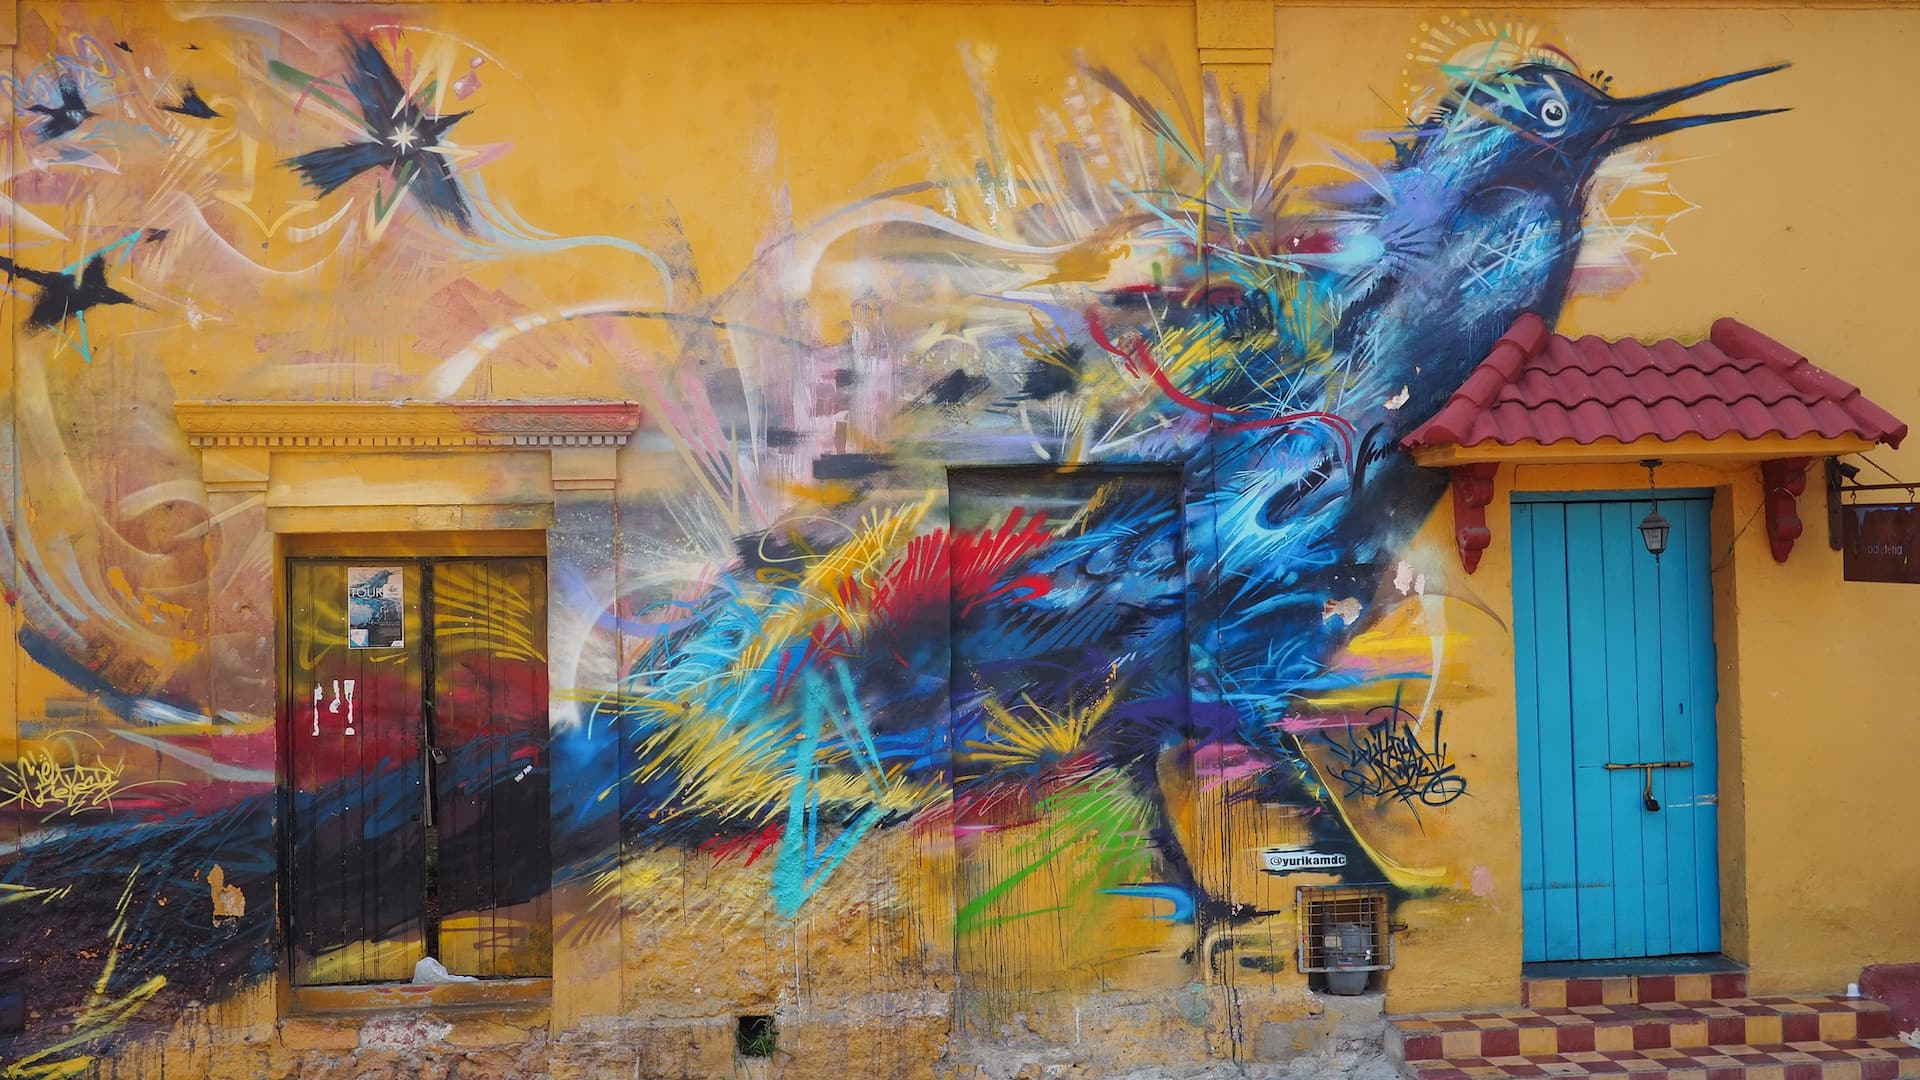 A painting of a blue bird on a yellow wall